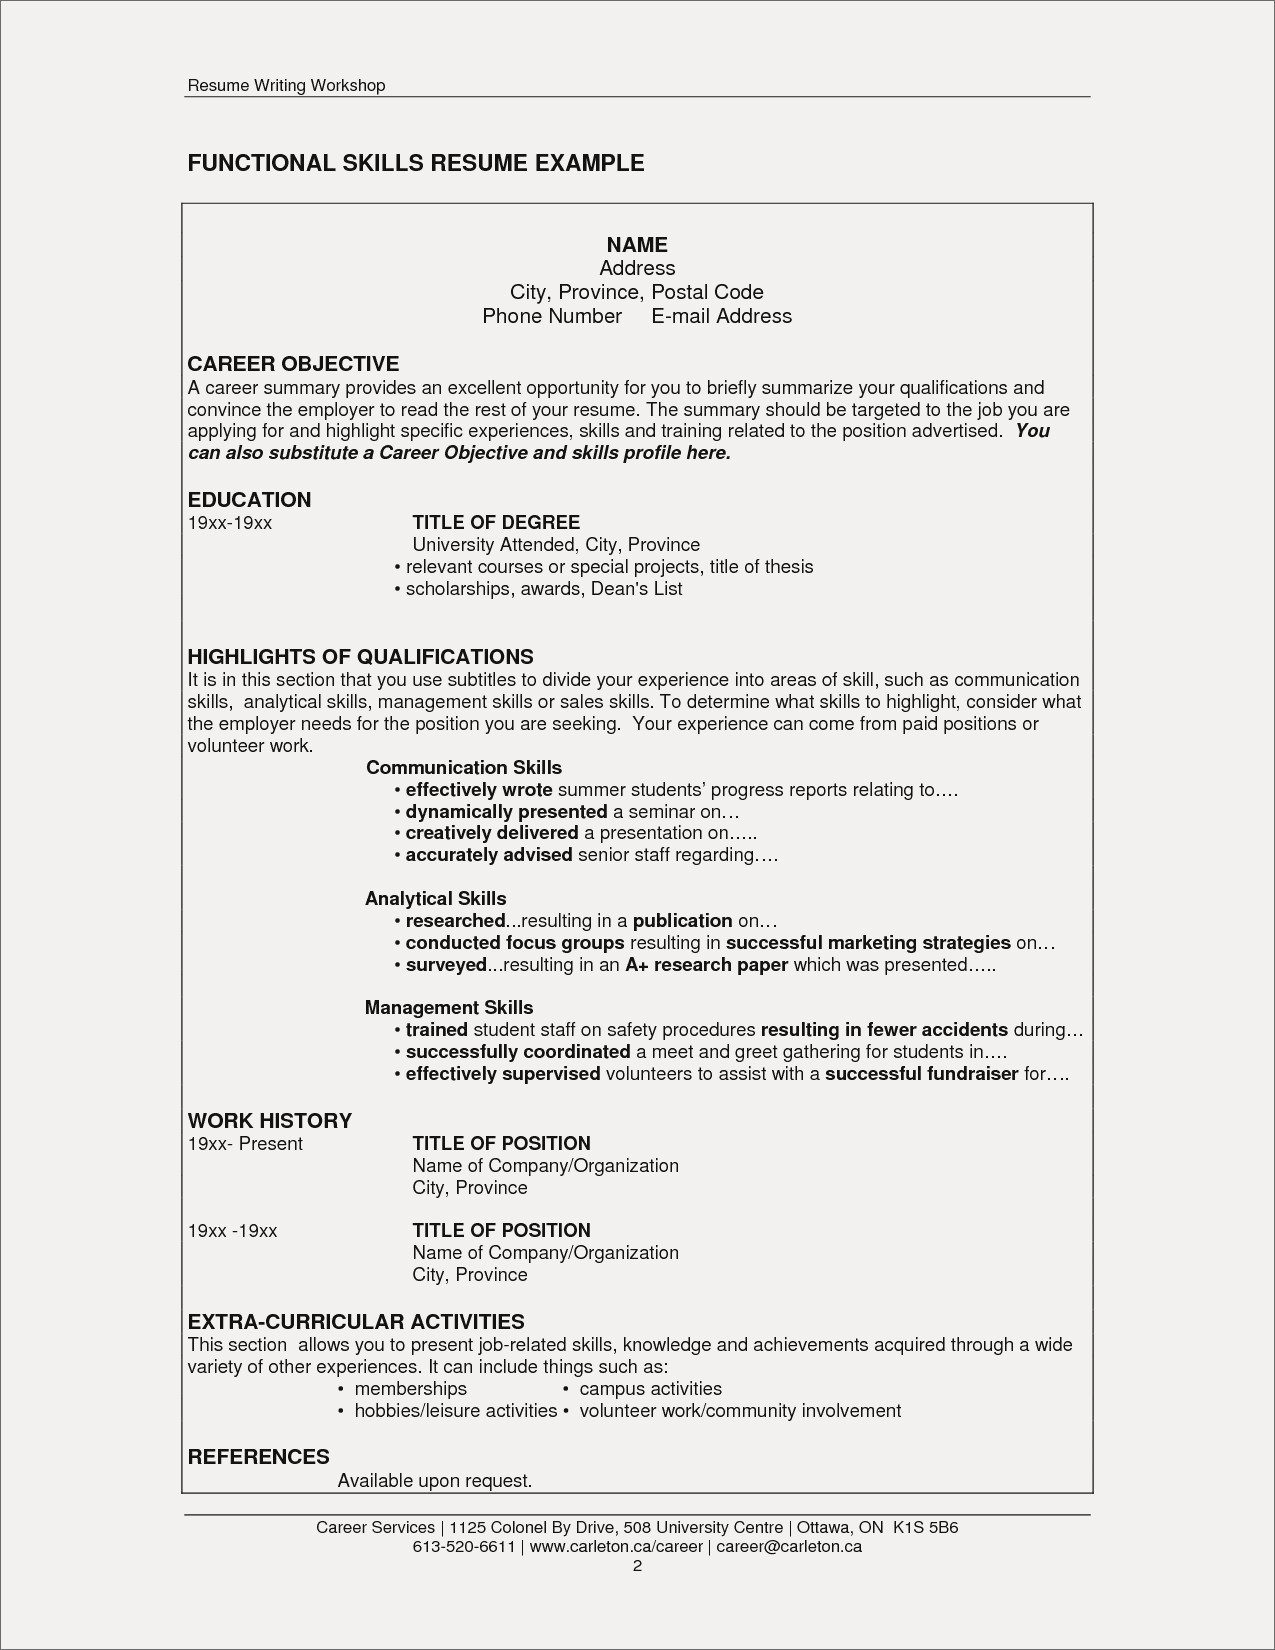 Examples Of Resume Skills - Resume Skill Set Examples New Resume Skills and Abilities Beautiful